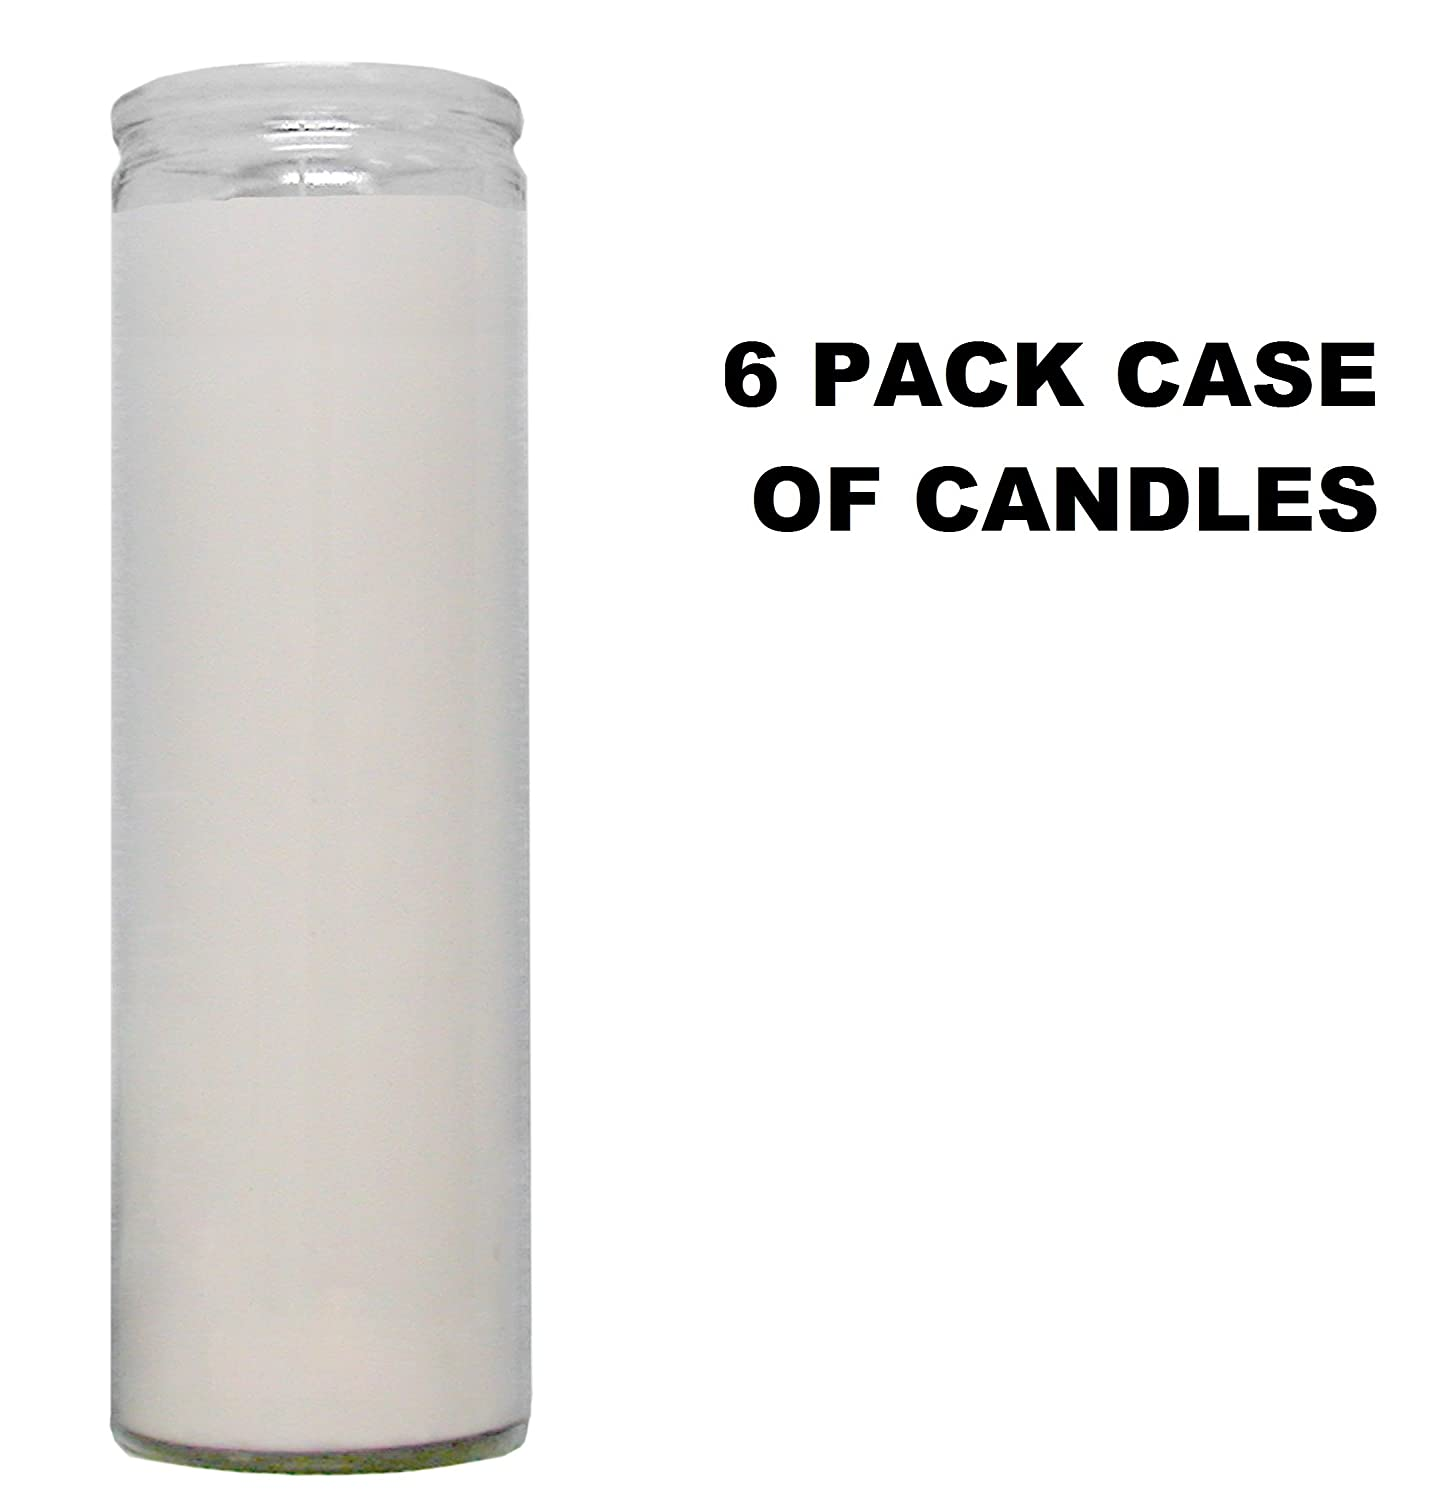 White Paraffin Wax Religious Prayer Candles 6 Pack / Clear Glass White Paraffin Wax Novena Vigil Candles 6 Pack